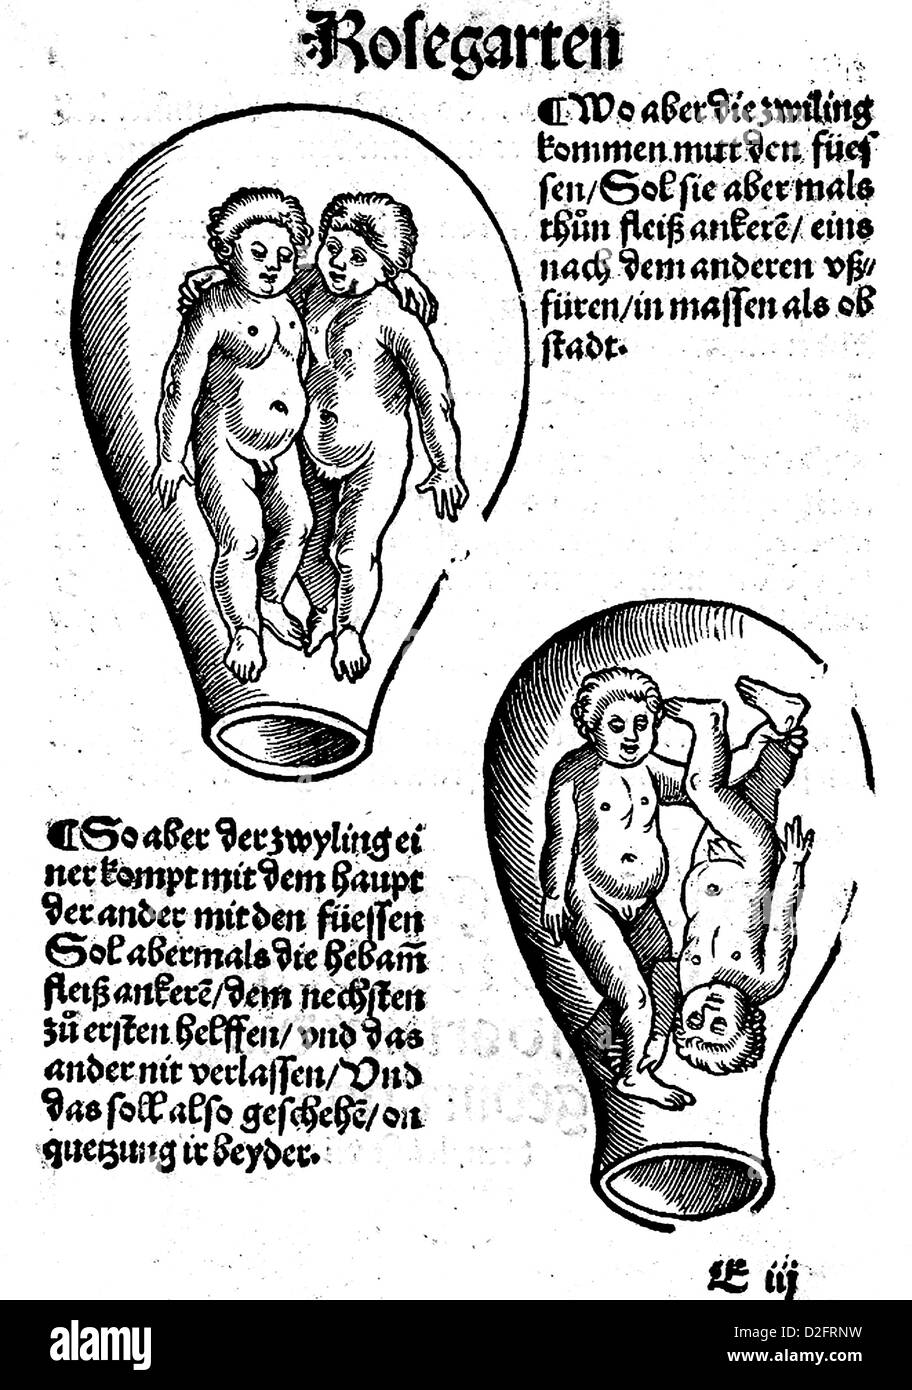 Eucharius rosslin c 1470 1526 diagram of twins in the womb from eucharius rosslin c 1470 1526 diagram of twins in the womb from the 1513 edition of his manual der rosegarten pooptronica Image collections